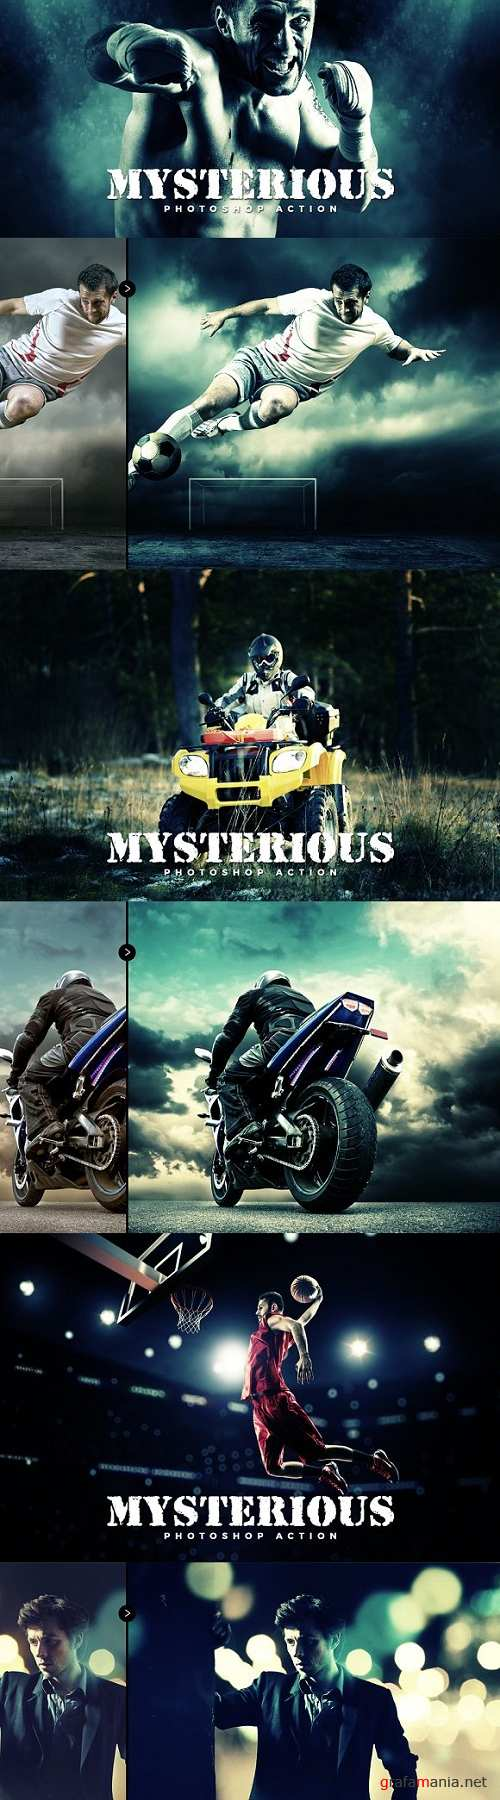 Mysterious Photoshop Action 1591579